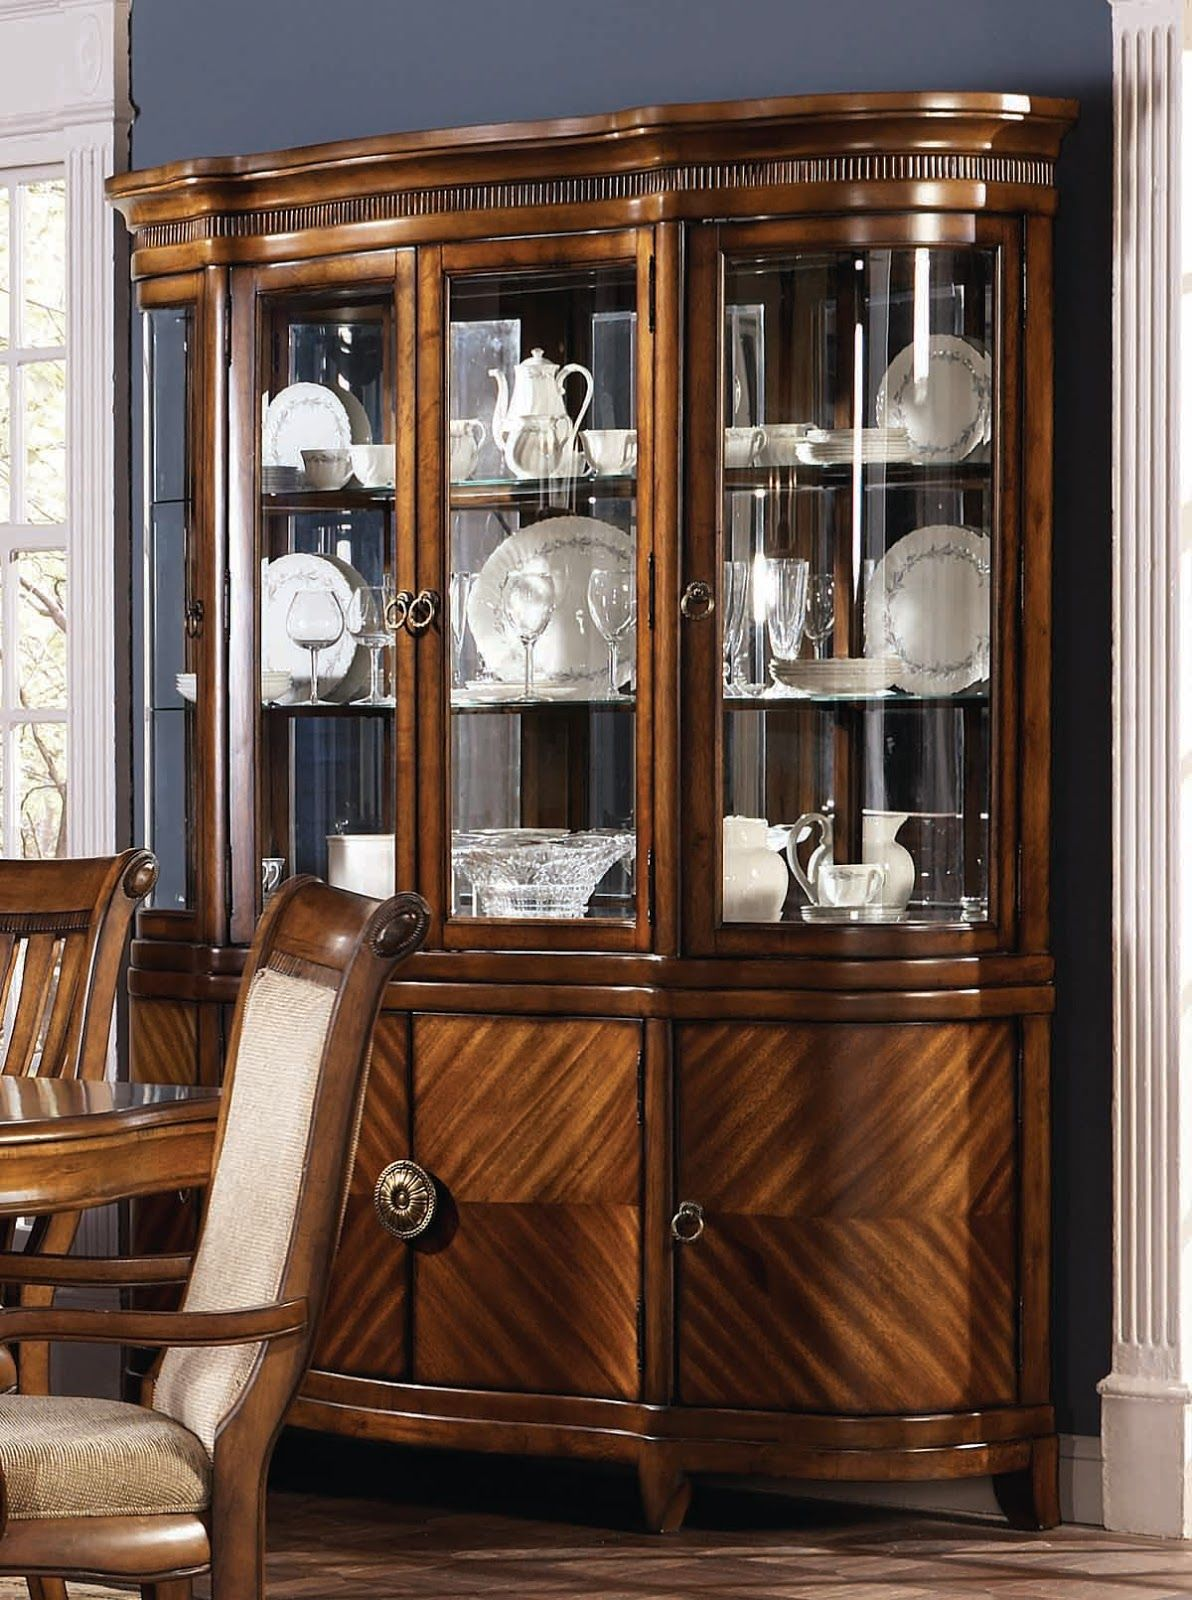 china cabinets | China Cabinets Crafted With Country Style | Home ...